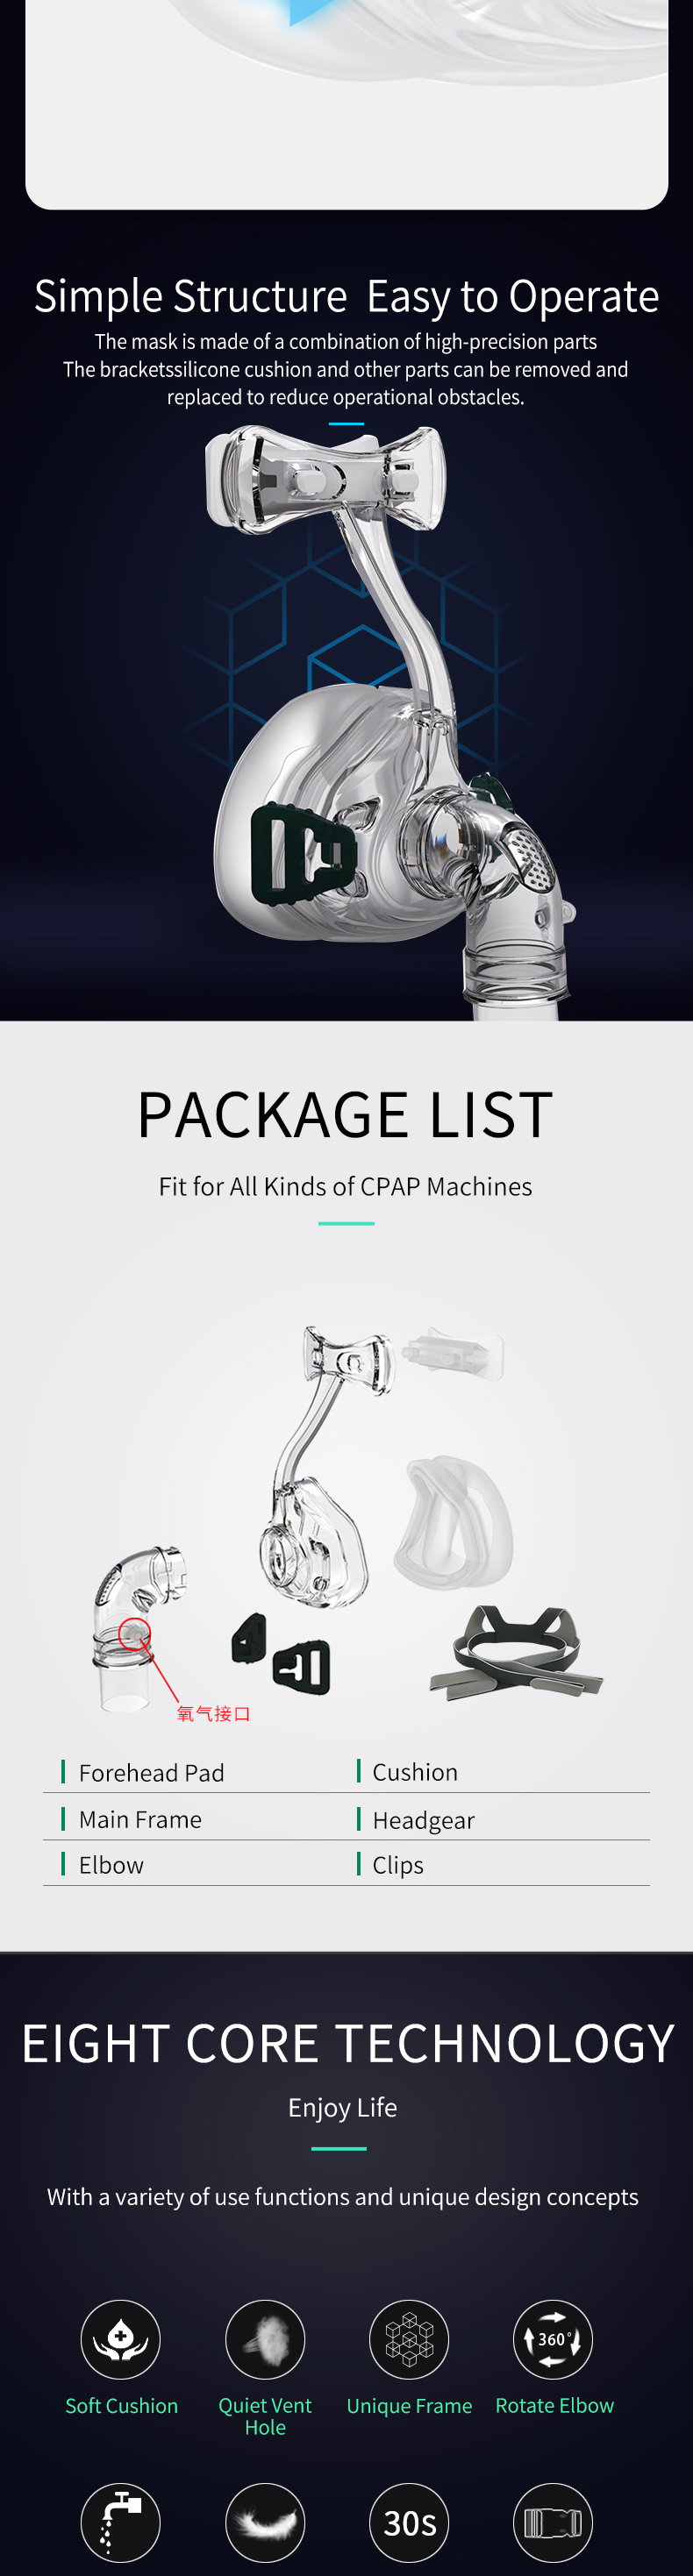 Nasal Mask CPAP Nasal Mask For all Brands CPAP Auto CPAP BiPAP S M L Sizes Available Suitable For Oxygenerator (2)